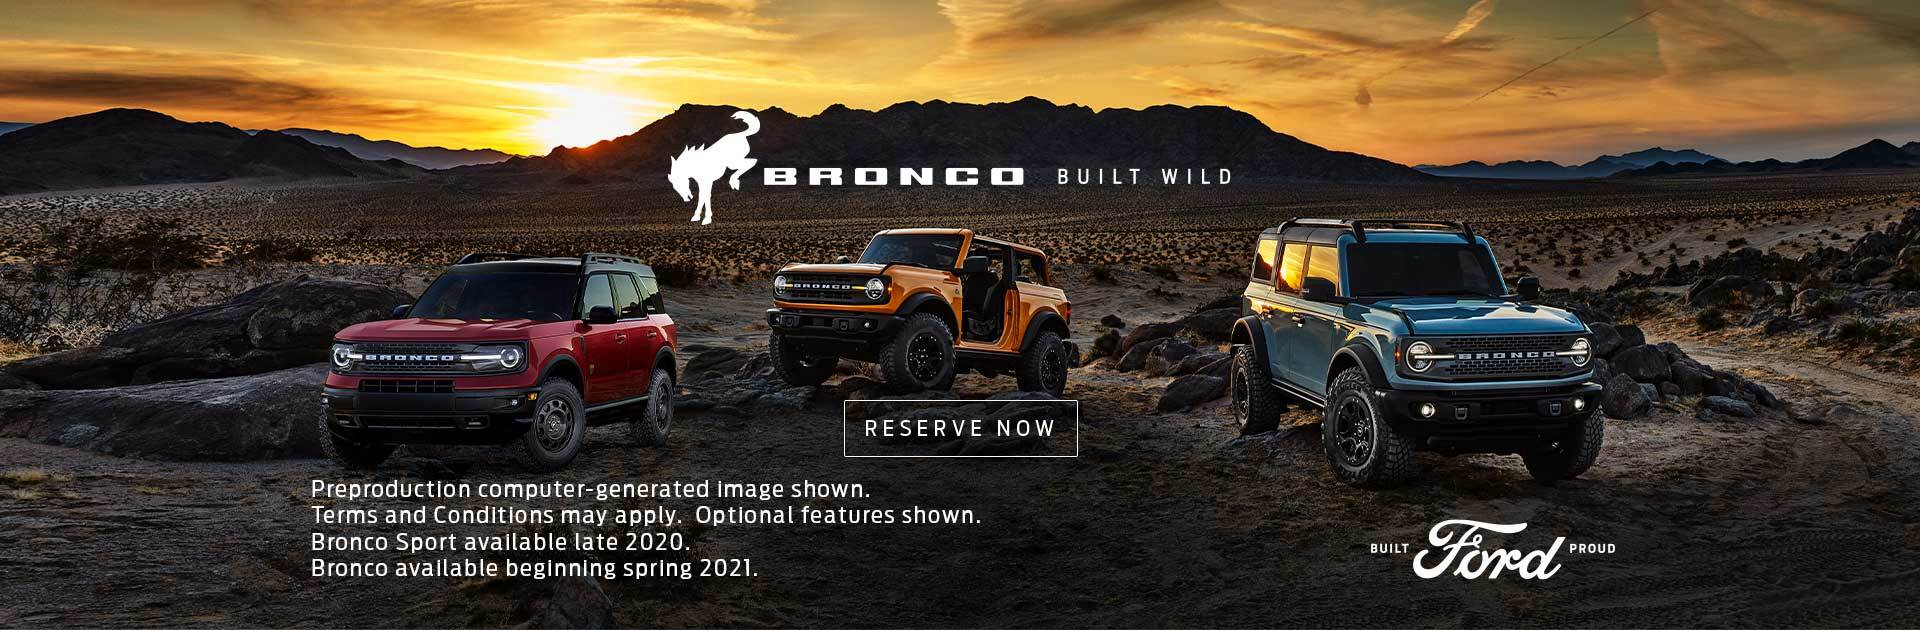 Bronco Reveal Dealercon 1920x630 V5